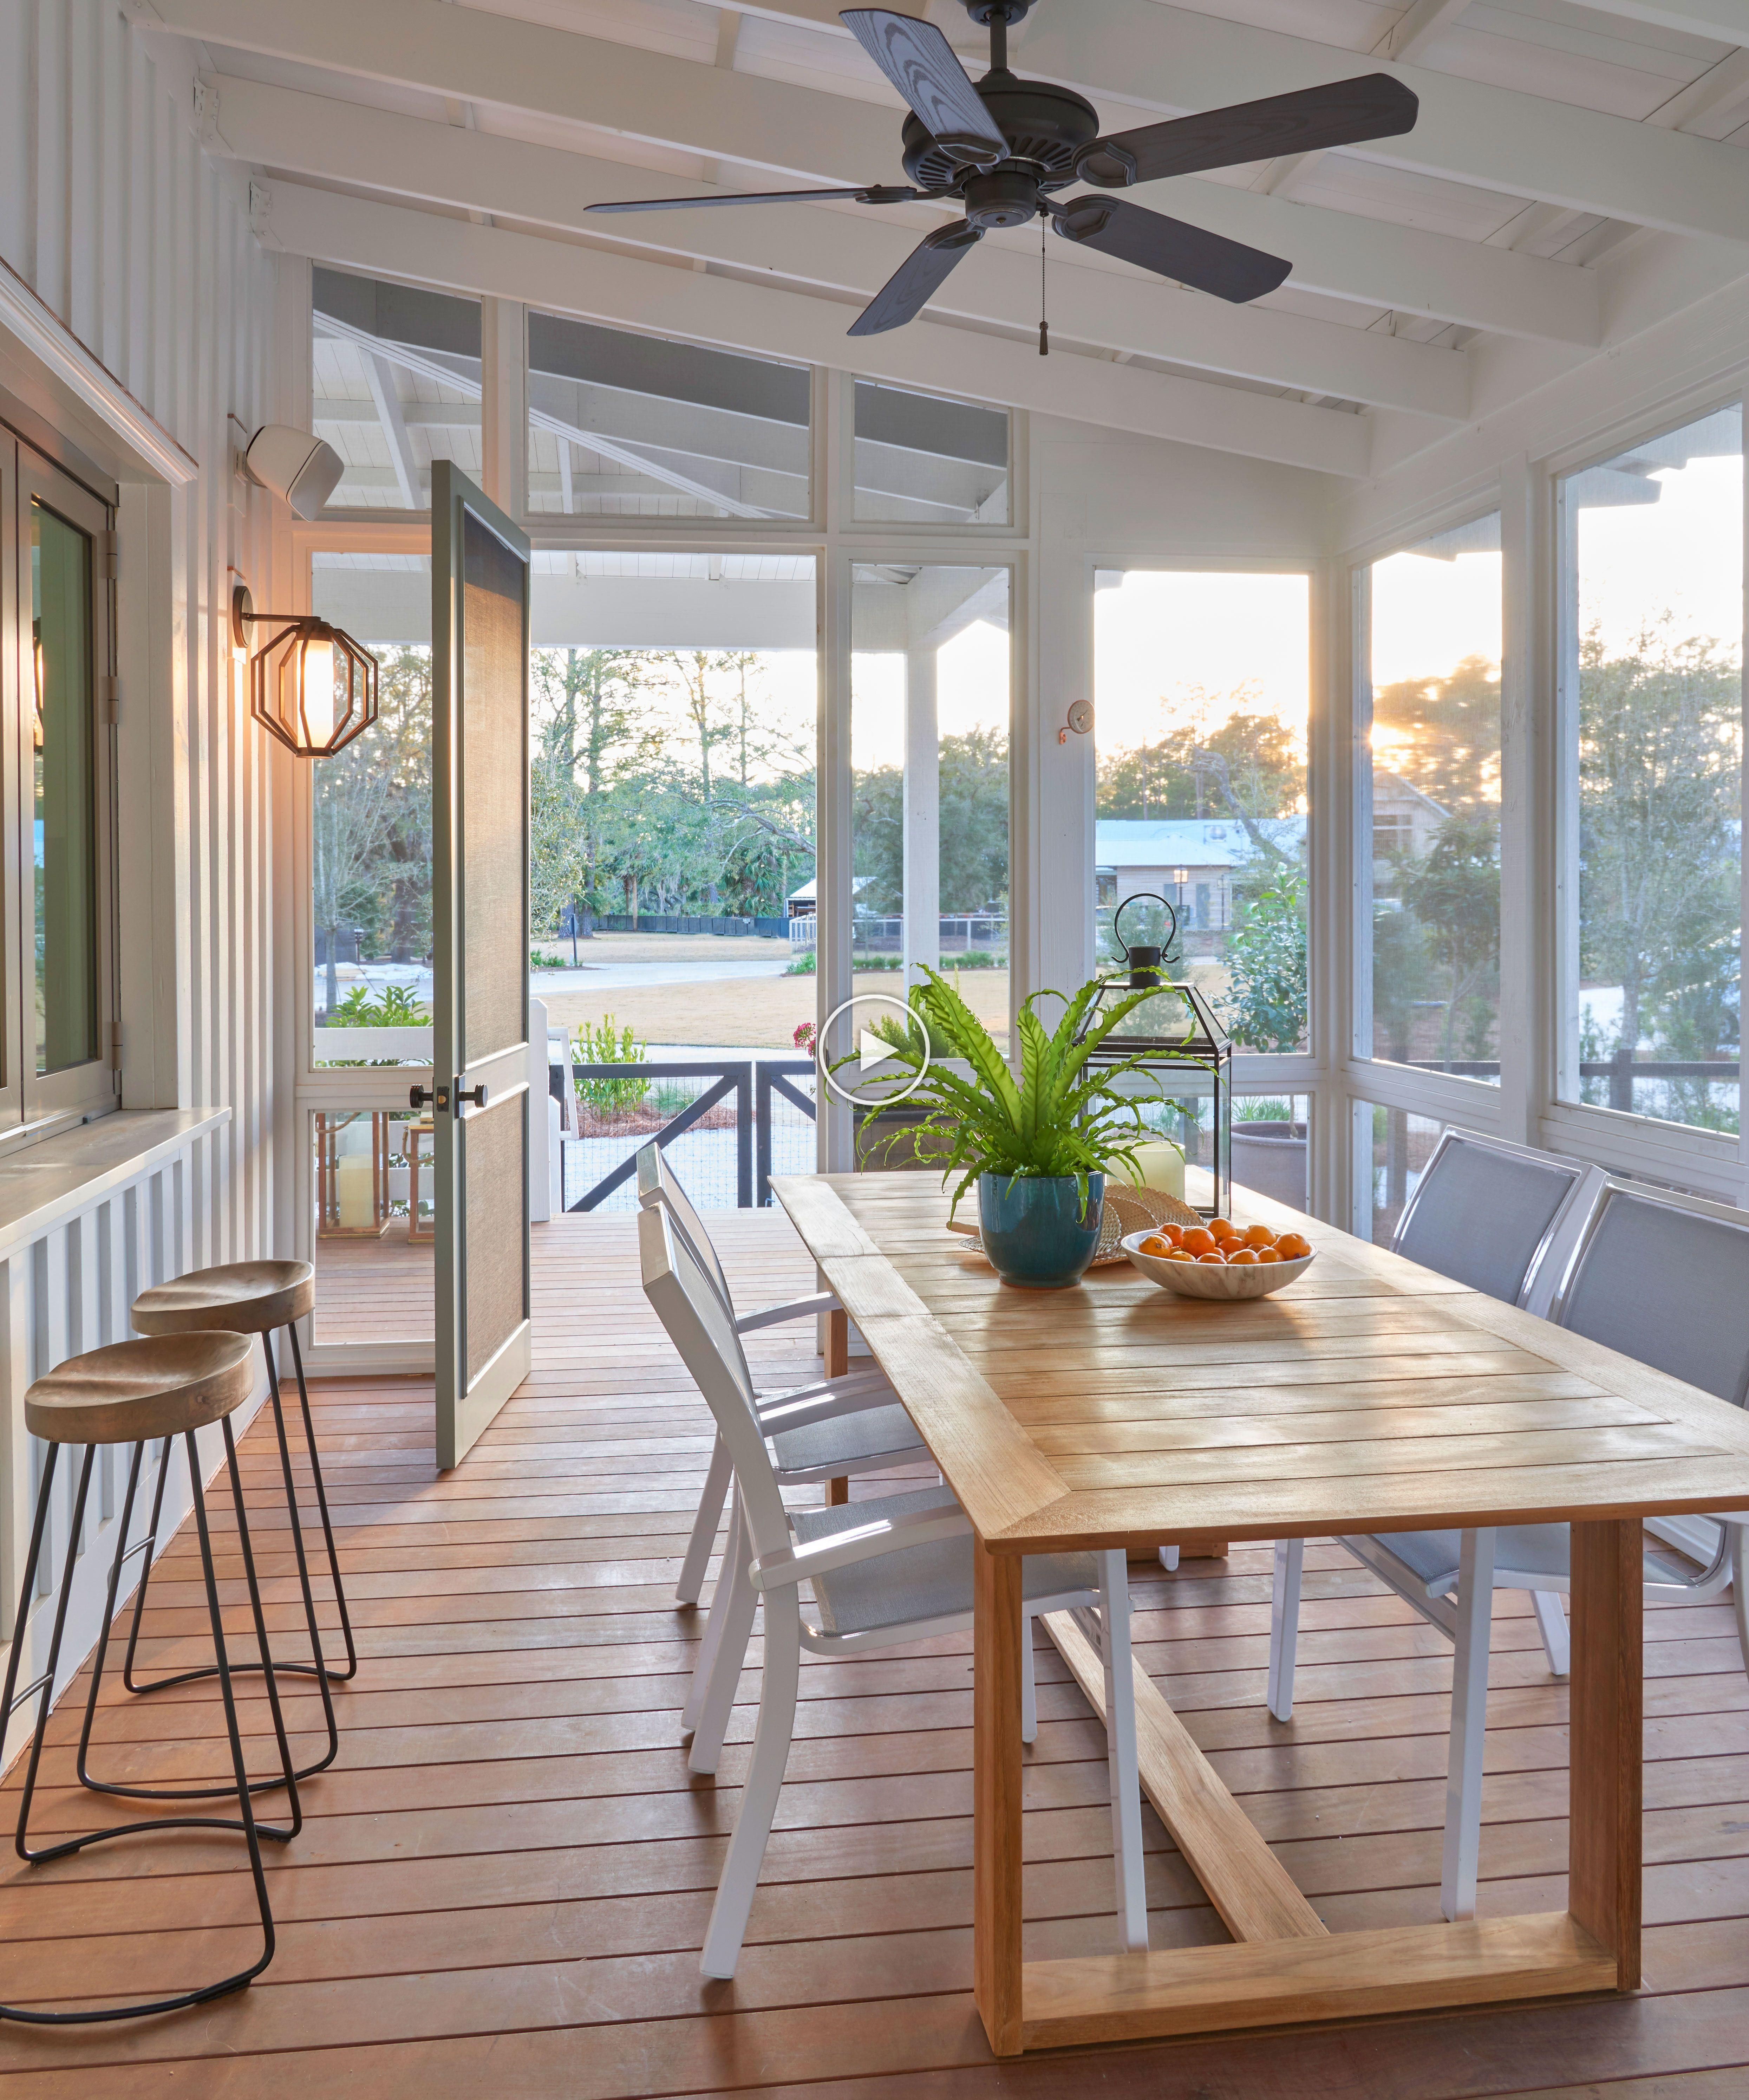 A screened-in porch with an exit to the outdoors and a firepit